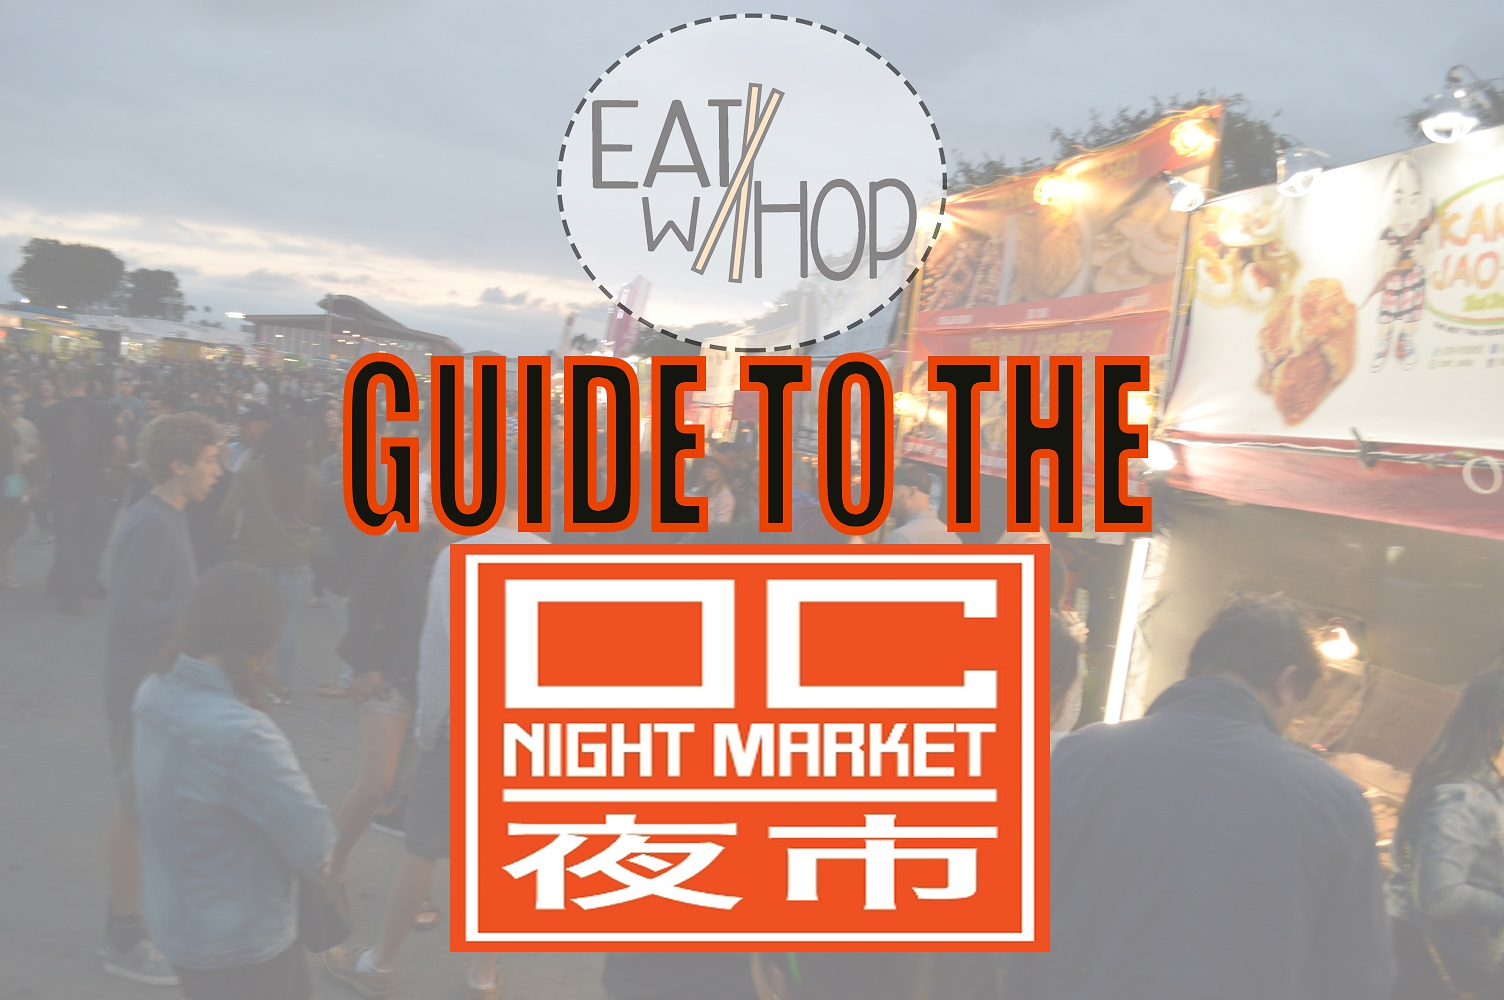 MY OC NIGHT MARKET 2016 EVENT RECAP AND TIPS